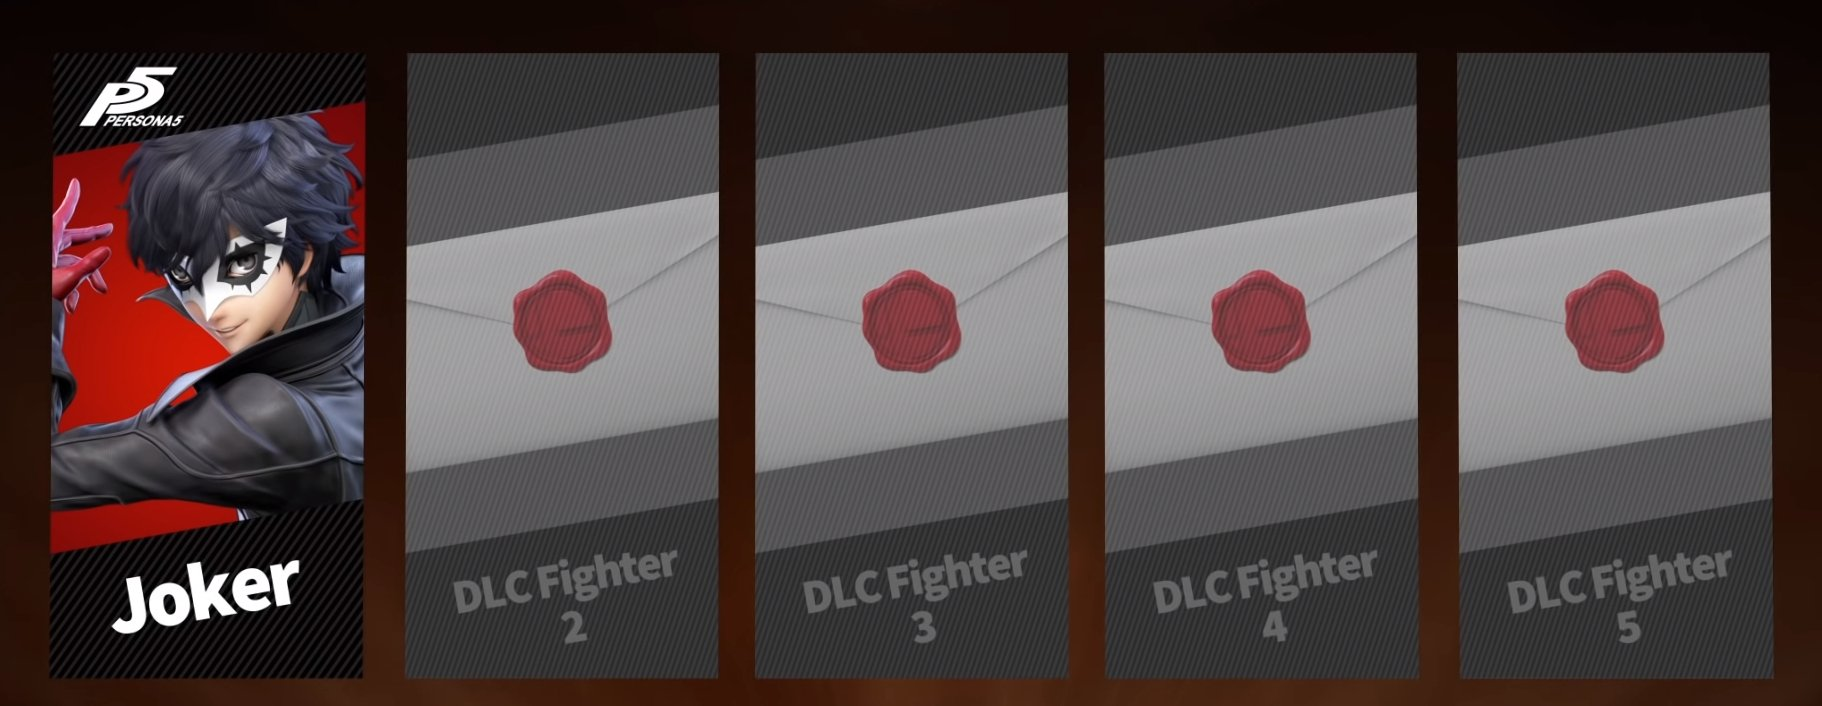 Super Smash Bros Ultimate DLC Fighters Pass